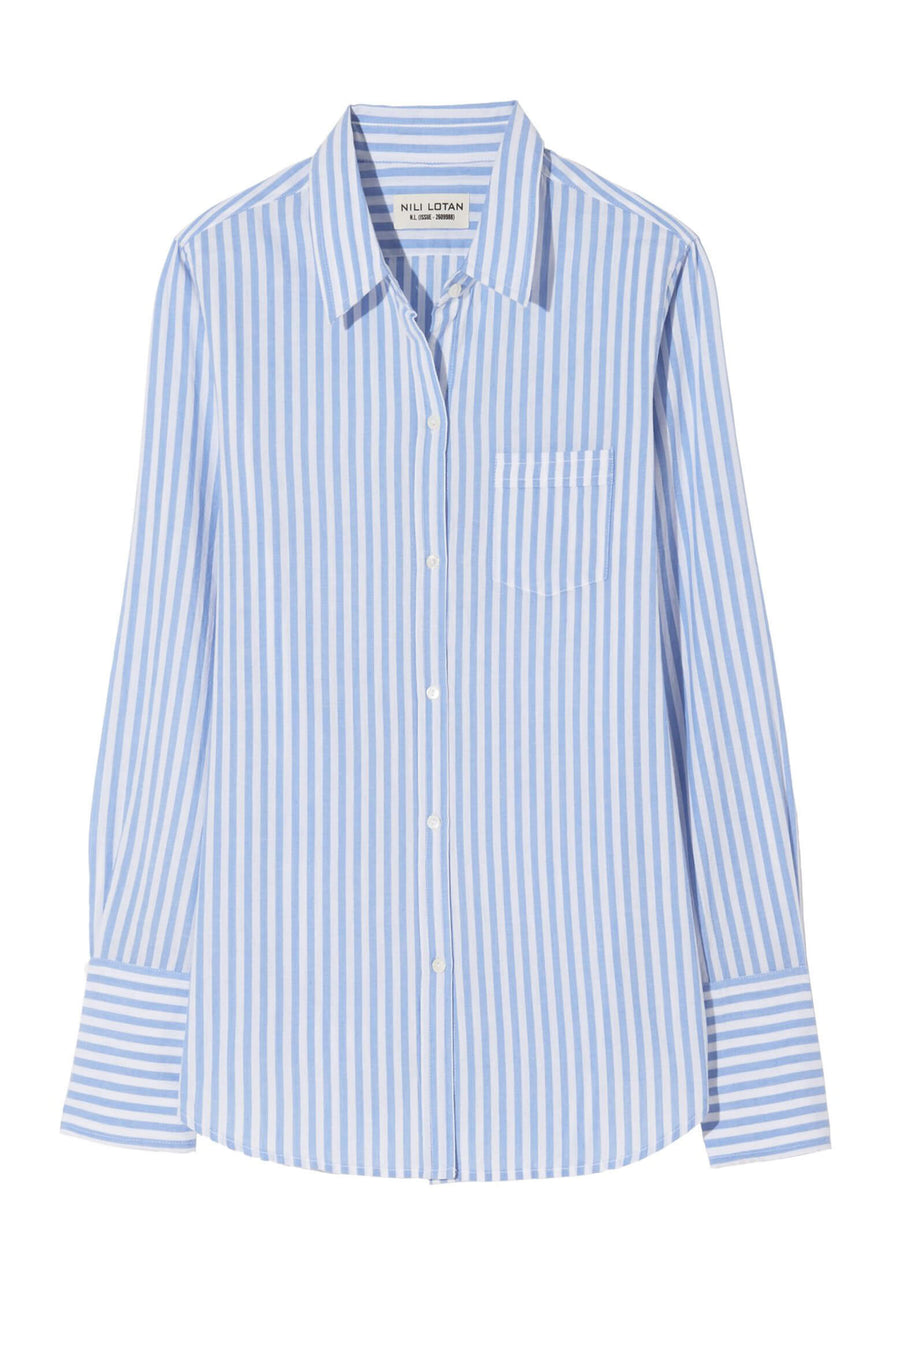 Nili Lotan NL Shirt in Ocean Stripe from The New Trend